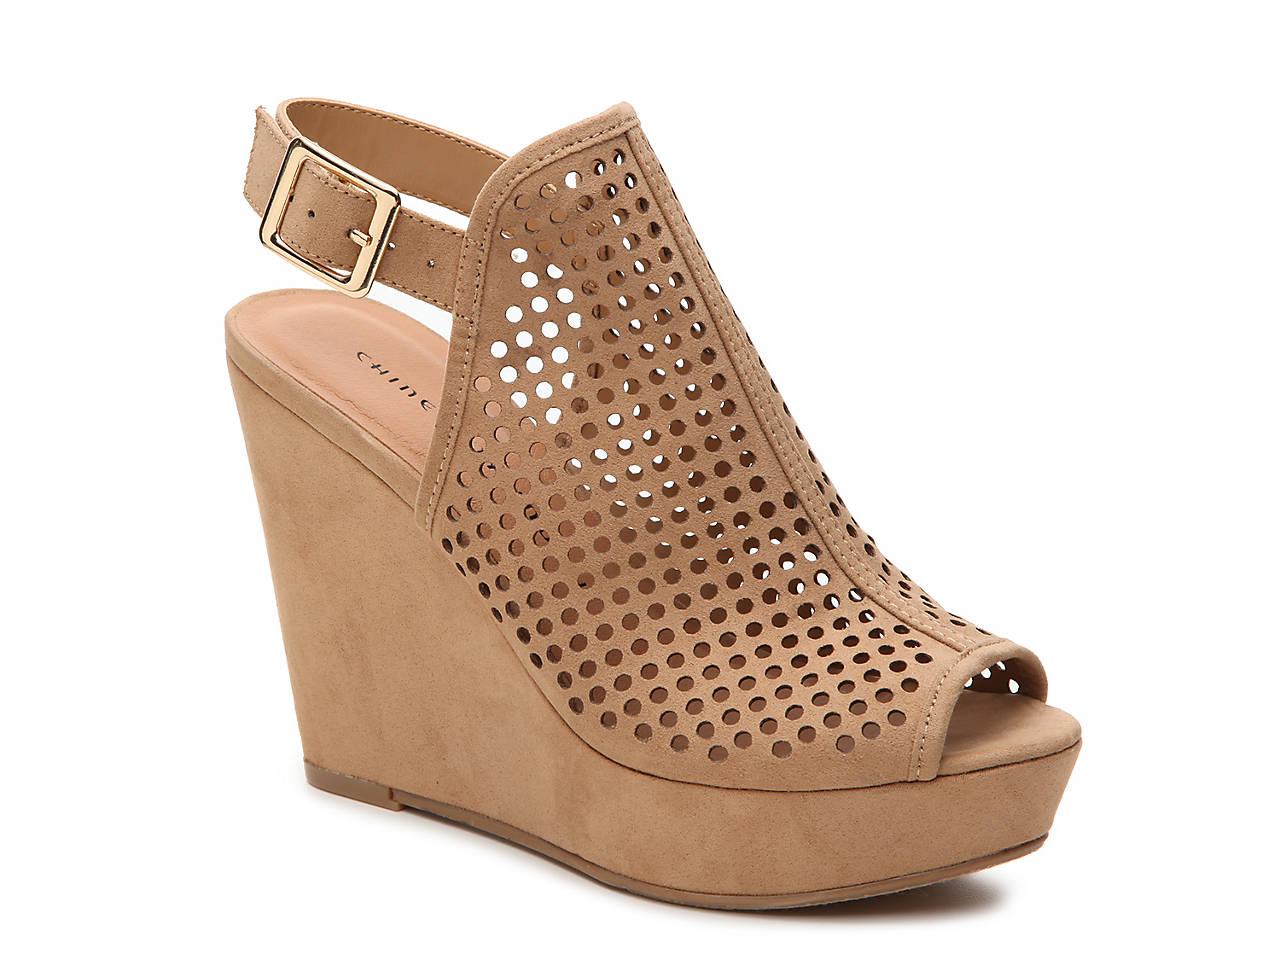 783942016a7 Chinese Laundry Z-Iris Wedge Sandal Women s Shoes